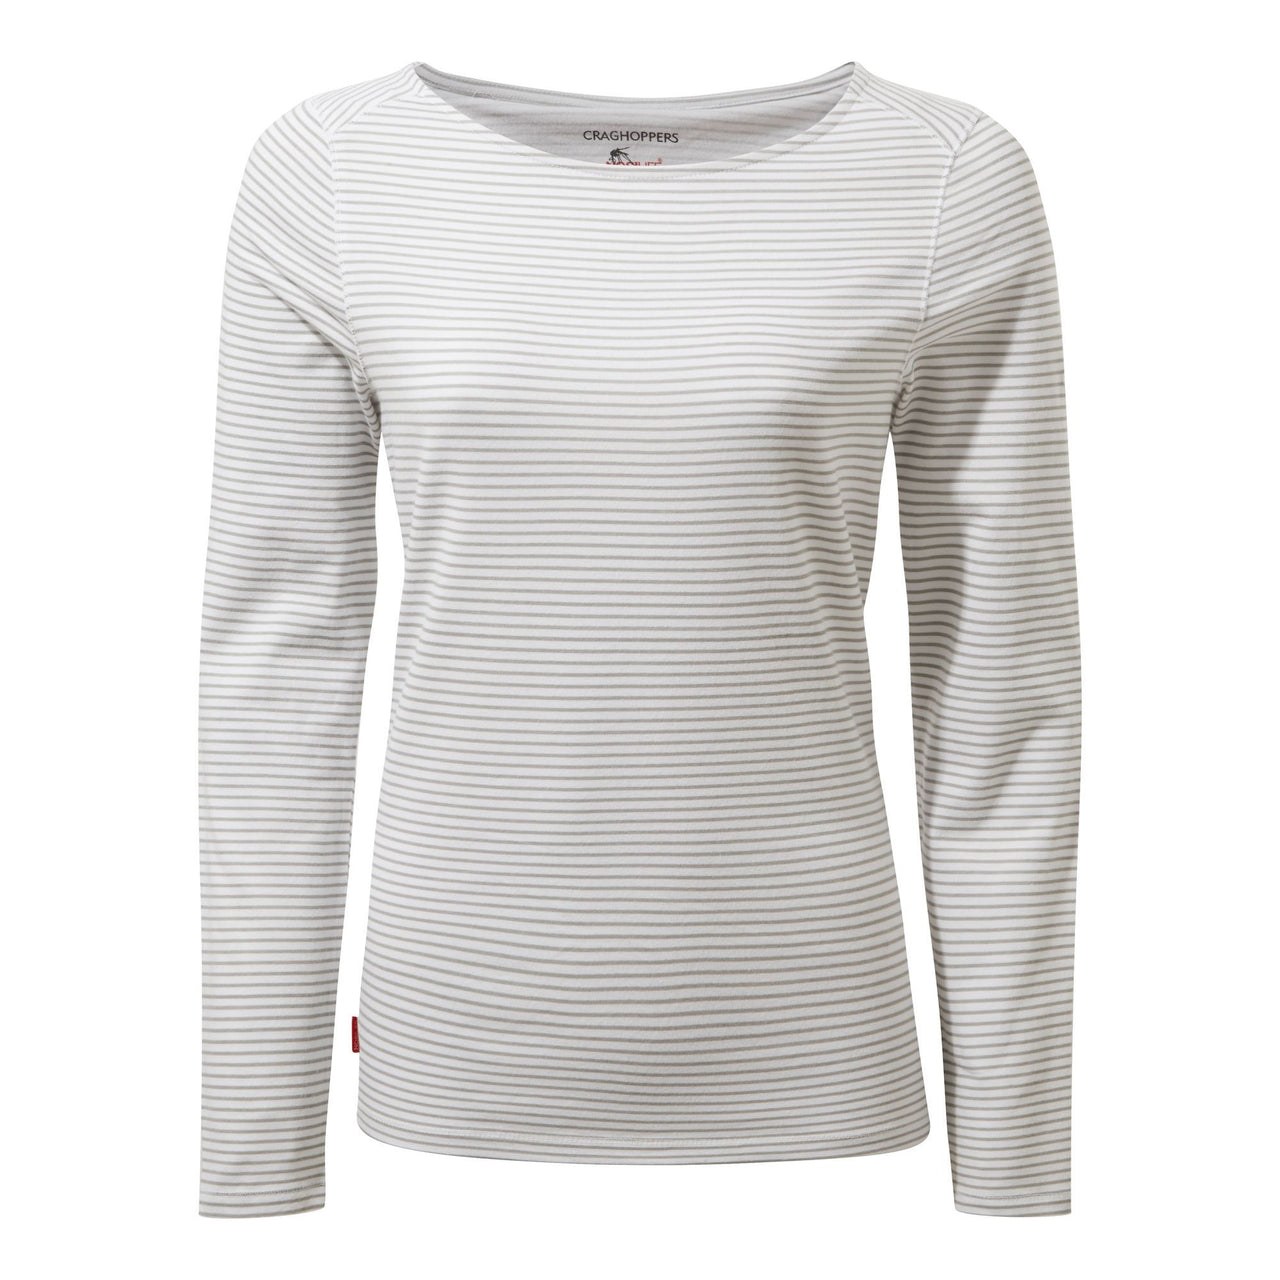 Craghoppers NosiLife Erin Long Sleeve Top